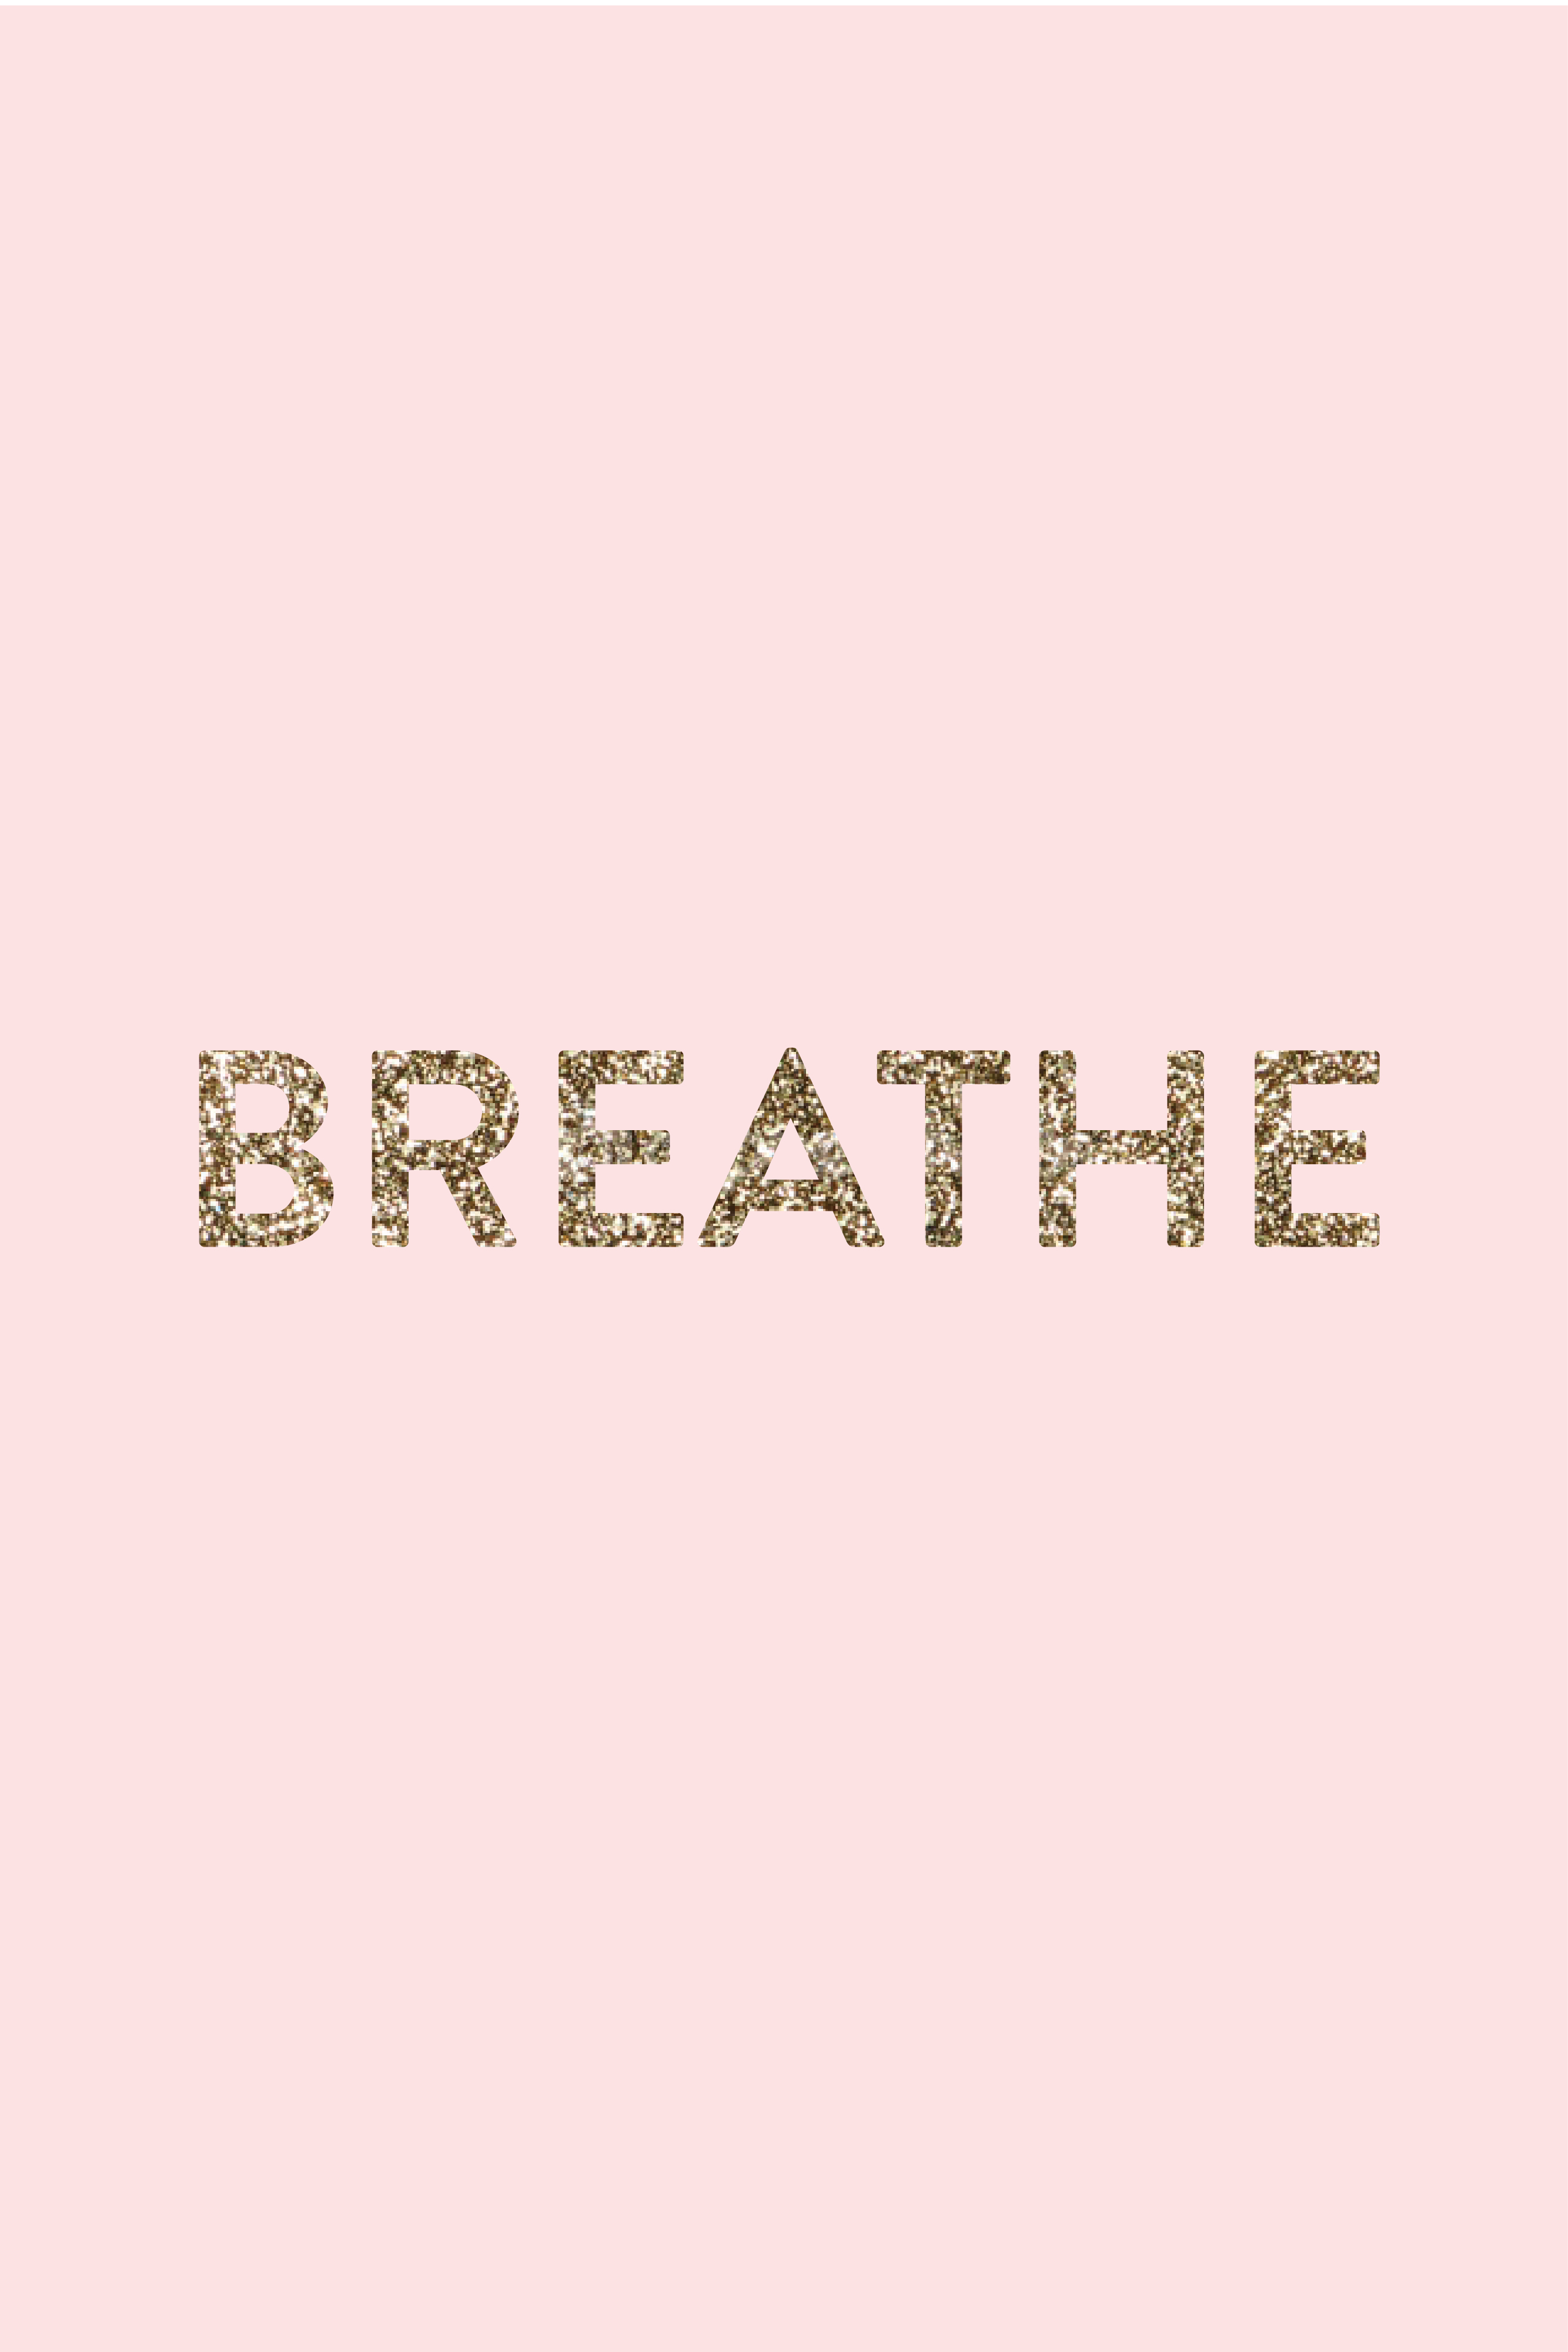 breathe-For-more-quotes-and-inspiration-about-life-visit-http-www-quotesarelife-com-wallpaper-wp424236-1